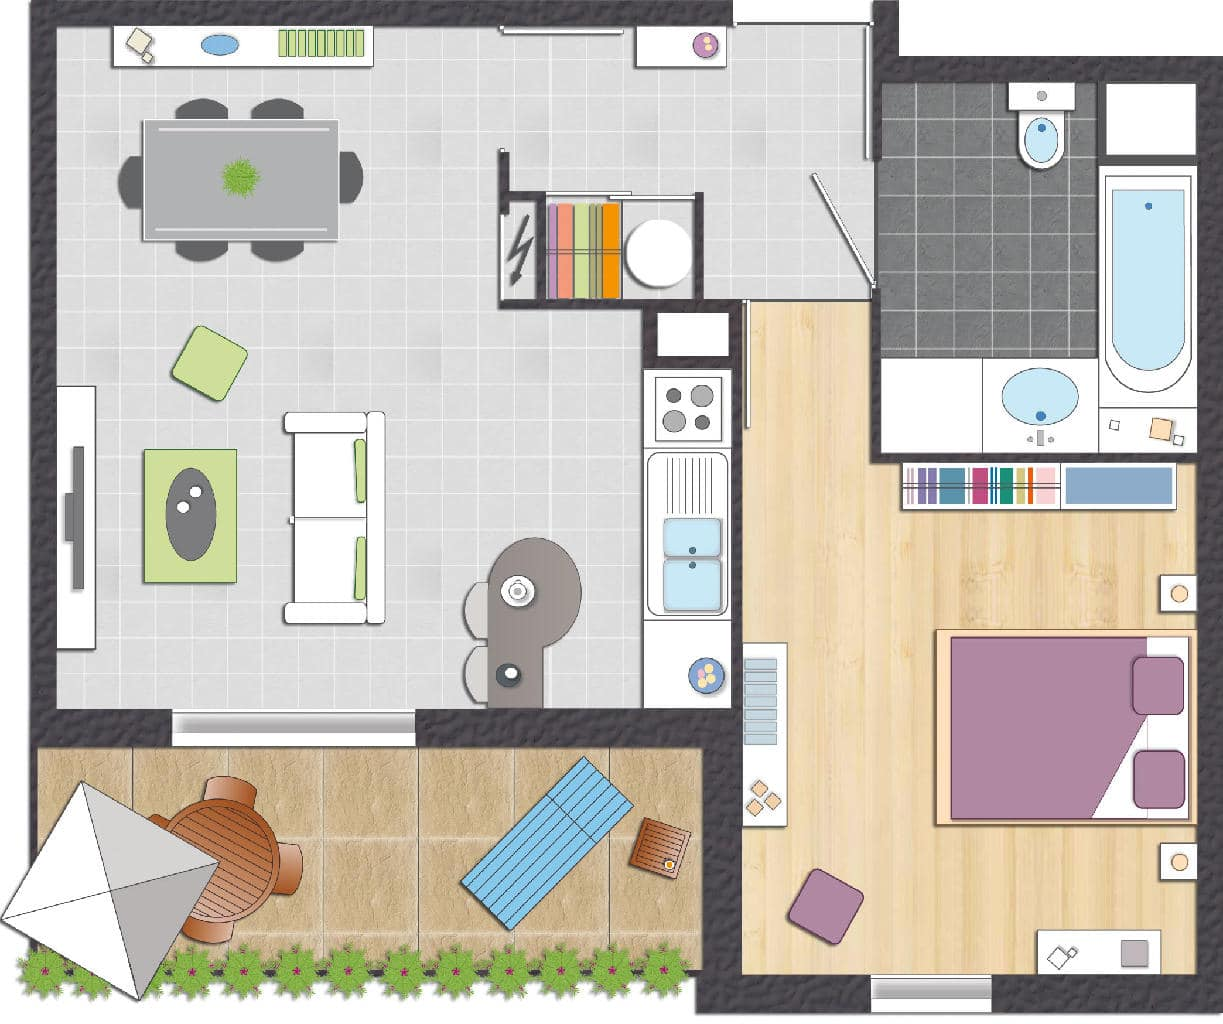 Plan d un appartement for Faire un plan d appartement